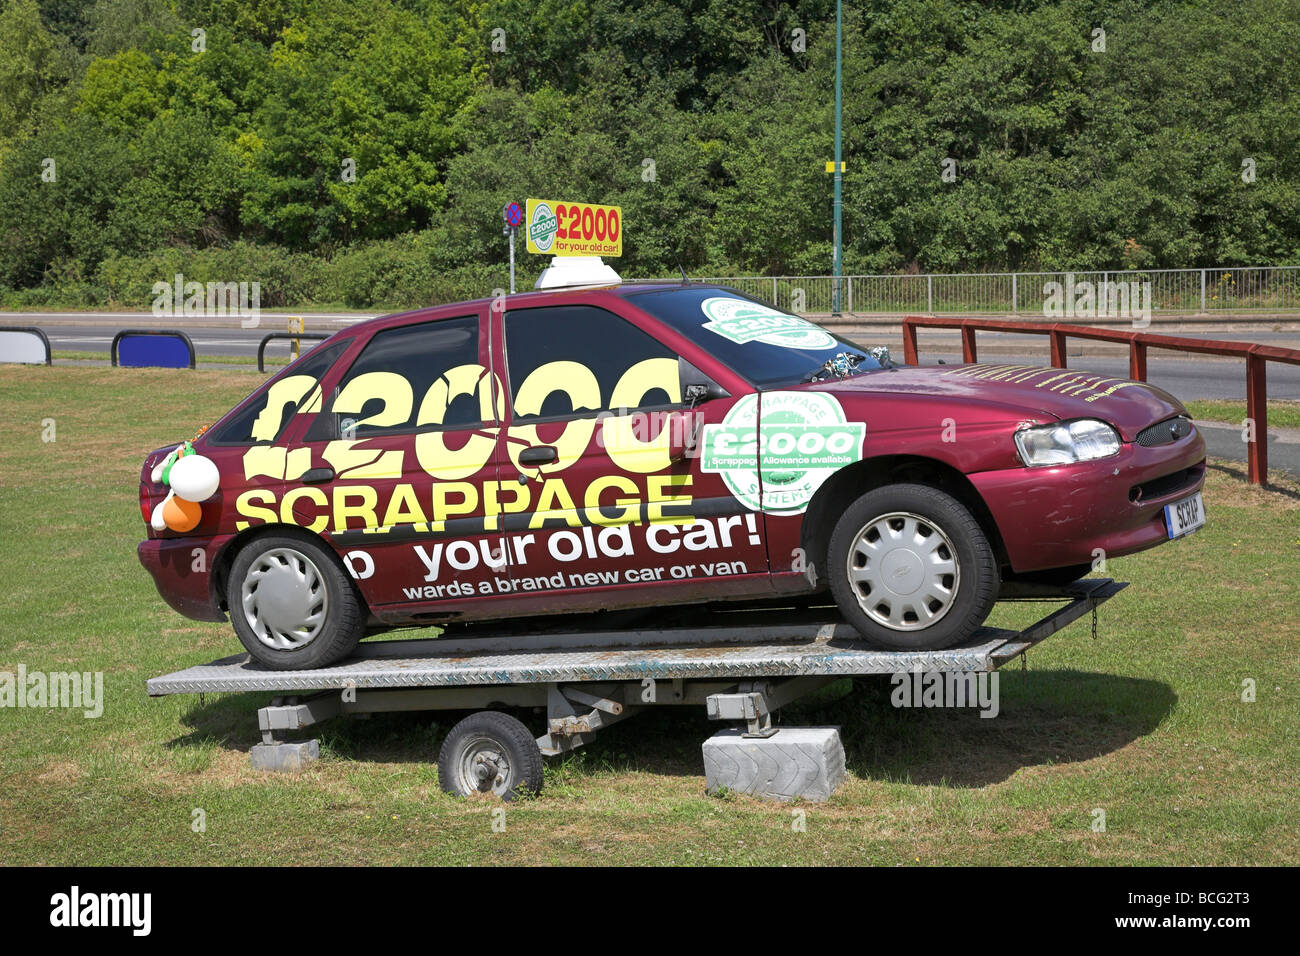 Scrappage Stock Photos & Scrappage Stock Images - Alamy